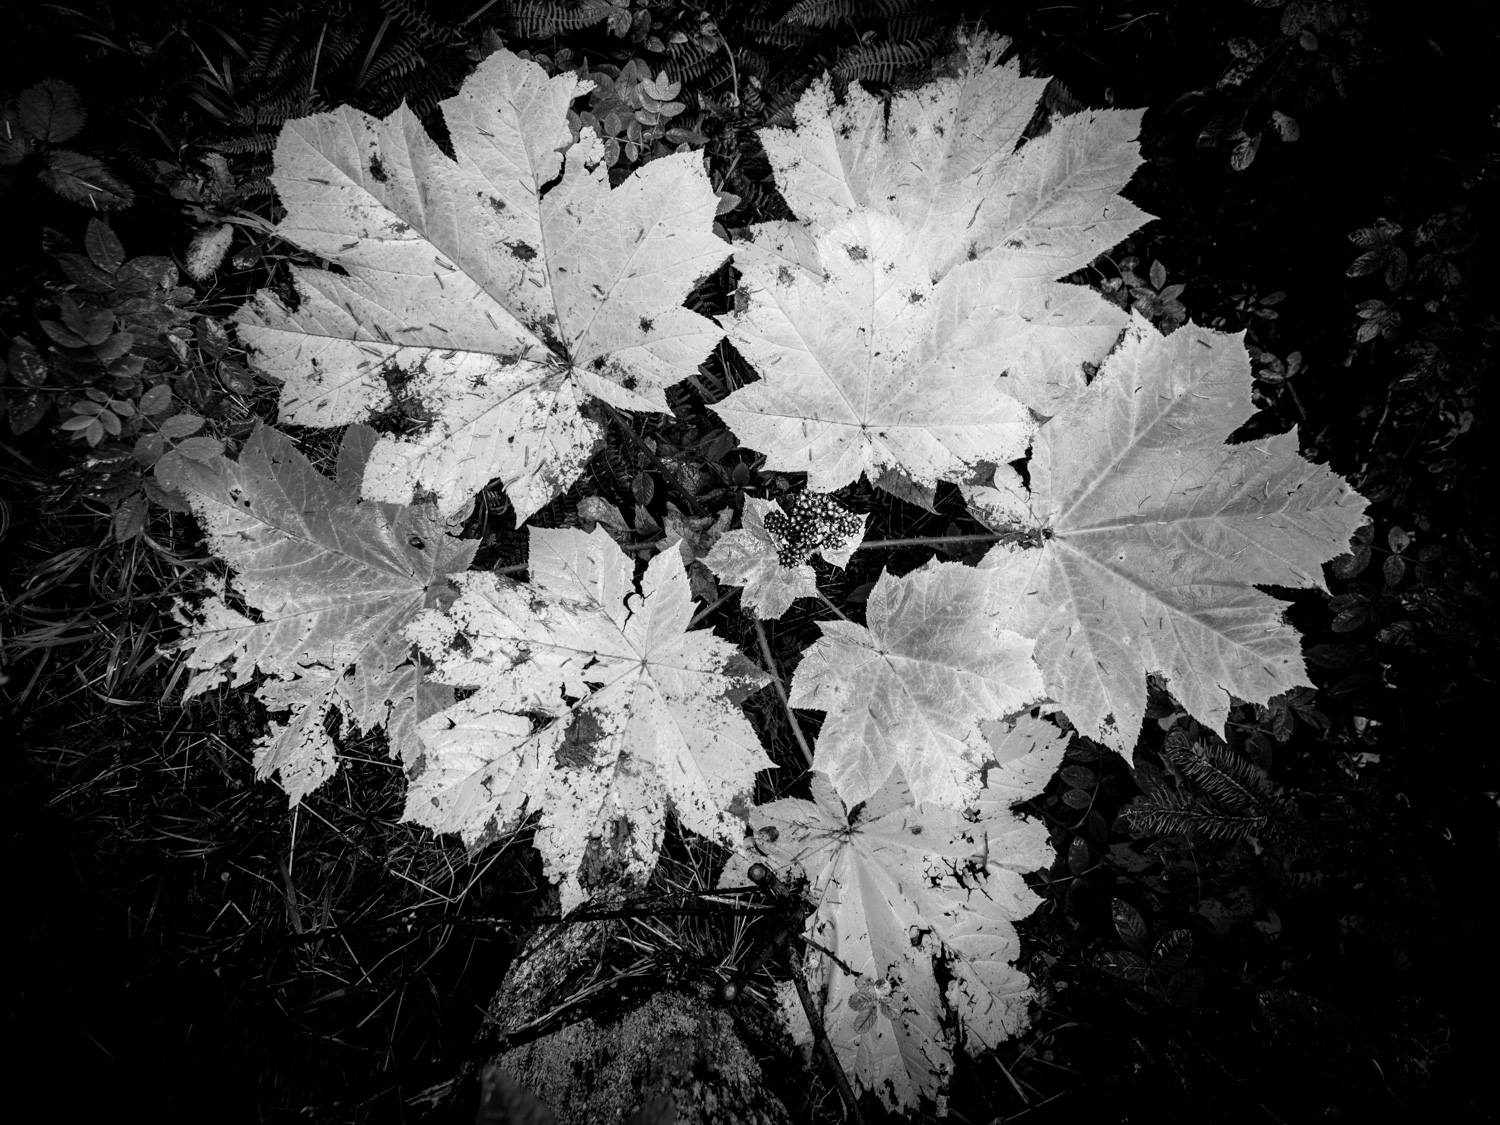 6 - Black and White in the Outdoors